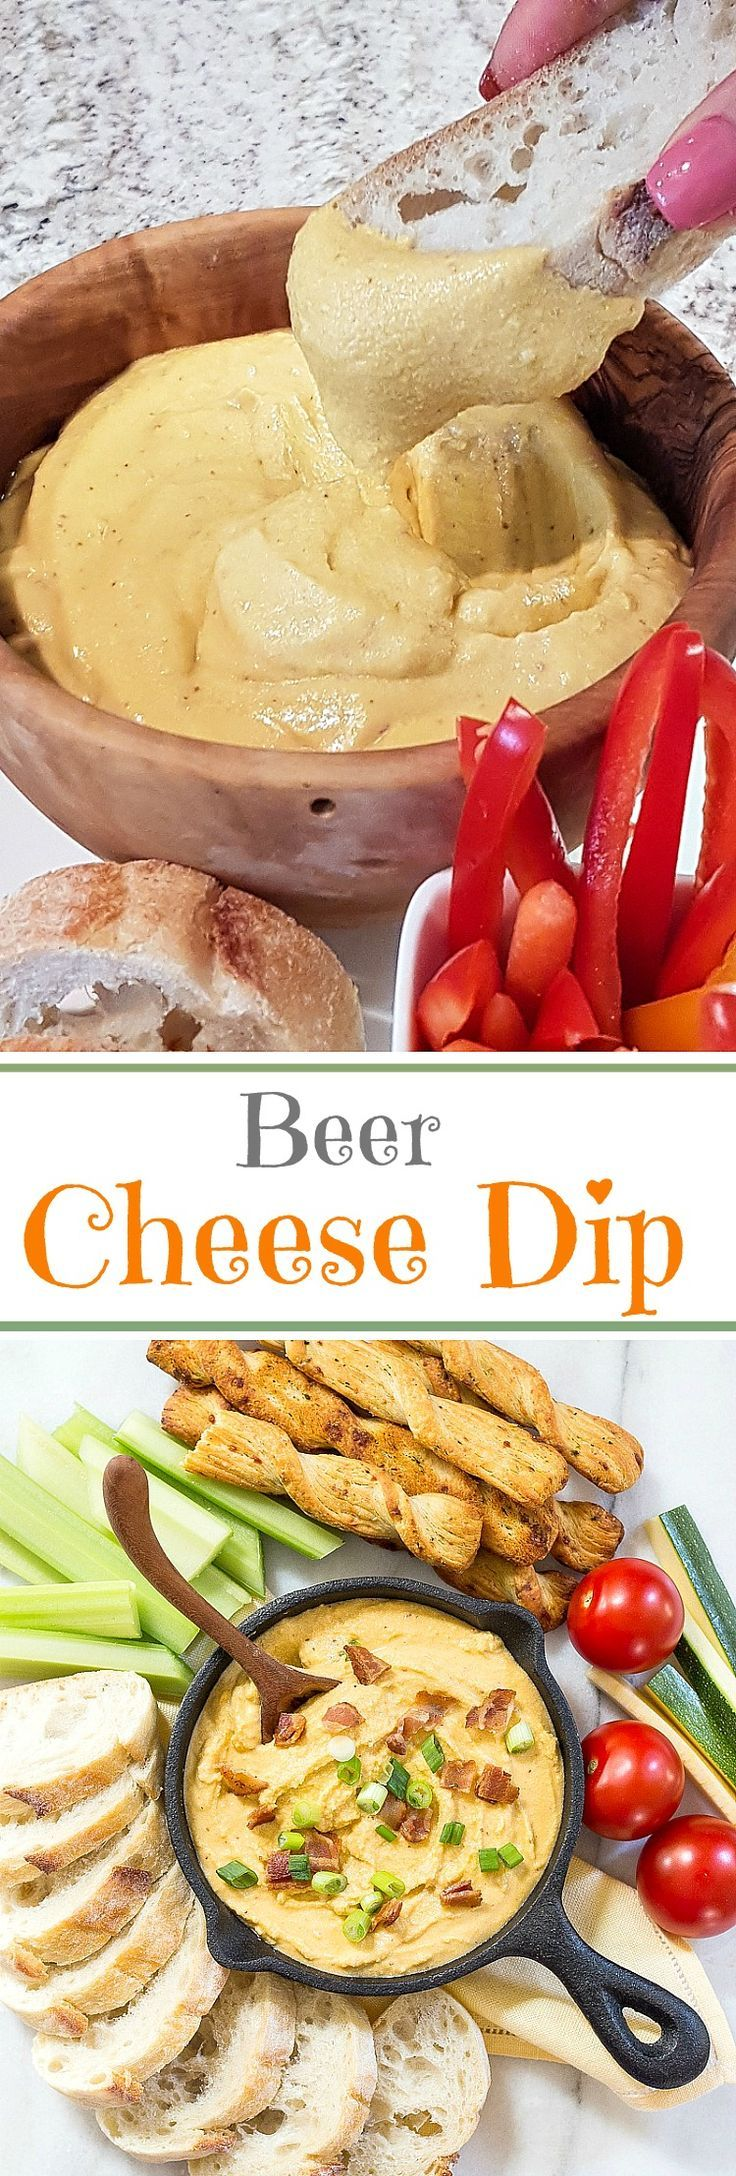 Canadian Beer Cheese Dip is the kind of snack that you want to include at every event. Who doesn't love cheese, bacon, and beer?!